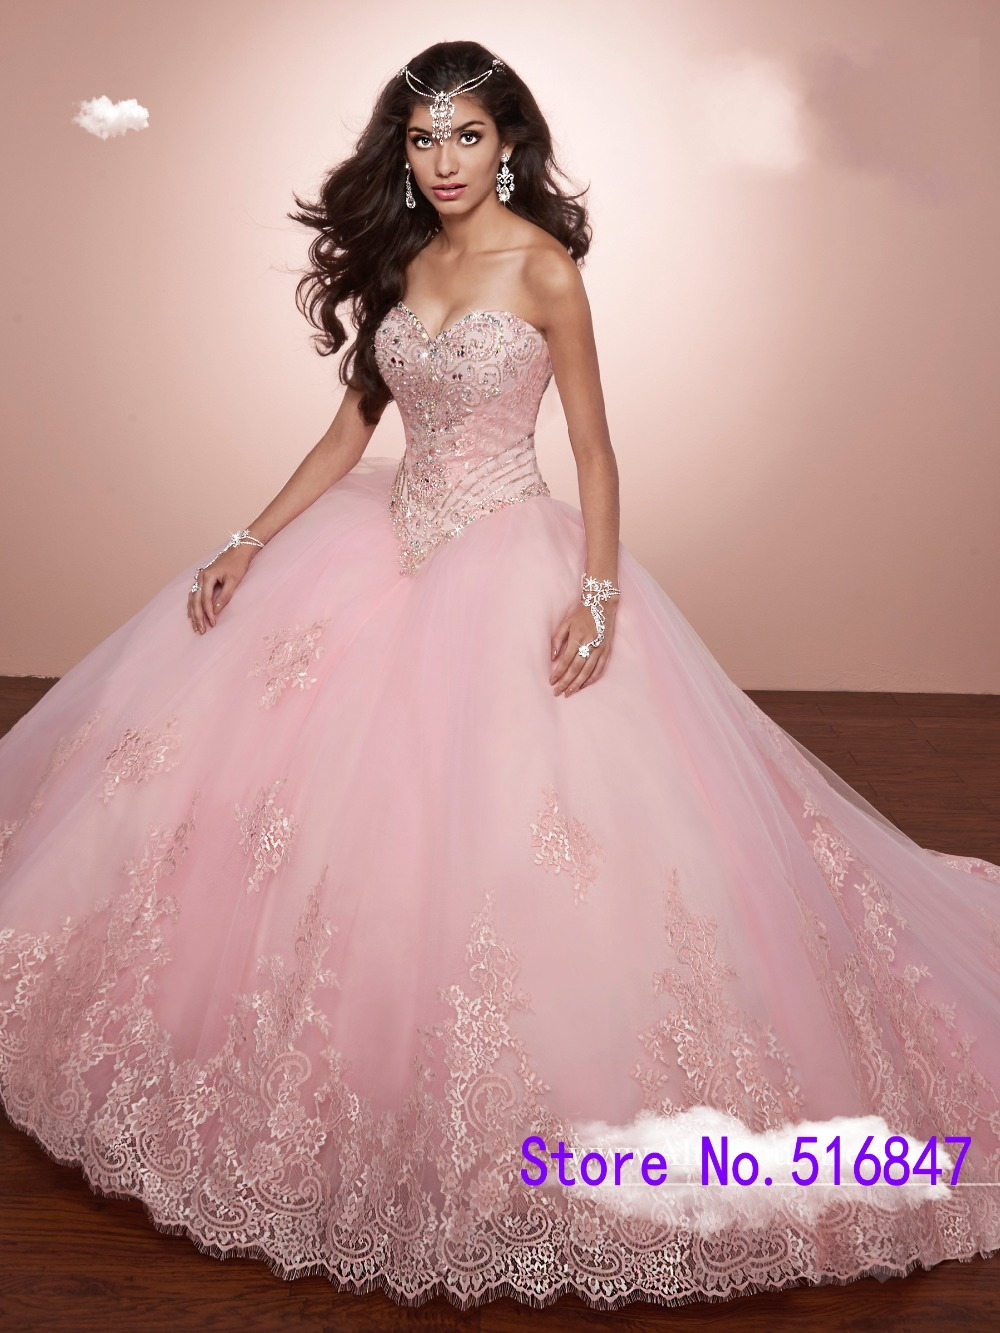 Red Roses Quinceanera Dress